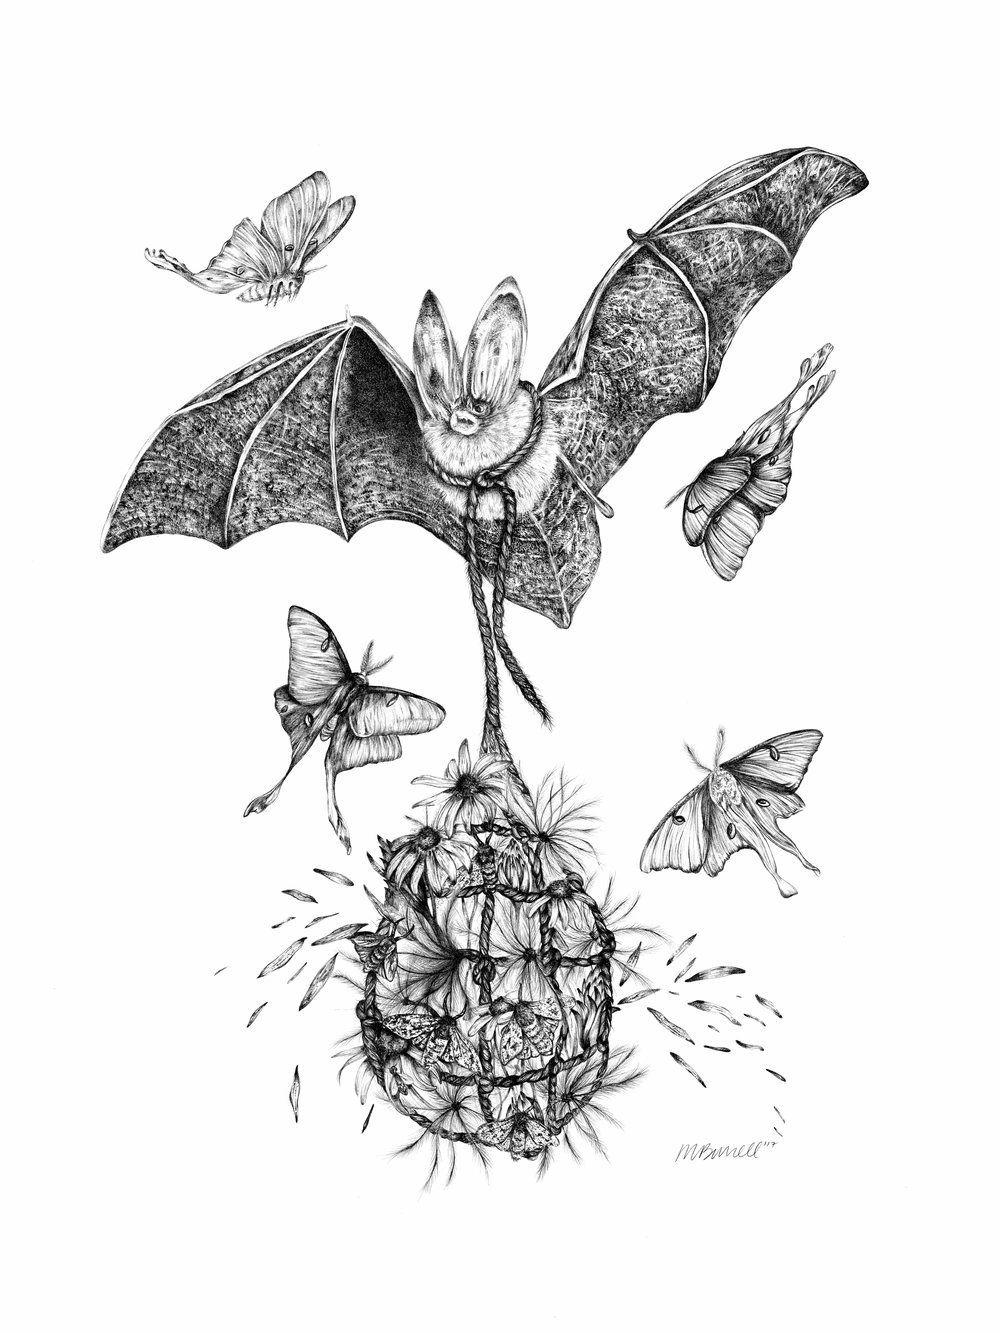 """Elbay"" is a graphite original completed in 2017. This work featured a Virginia Big-Eared Bat that has an endangered status. Surrounding Elbay are luna moths and he carries a sack of flowers and seeds. This is the last segment in the Migration series. Check out the Special Edition Digital color print as well!   Materials: graphite pencil, paper  Size: 24"" x 18"""